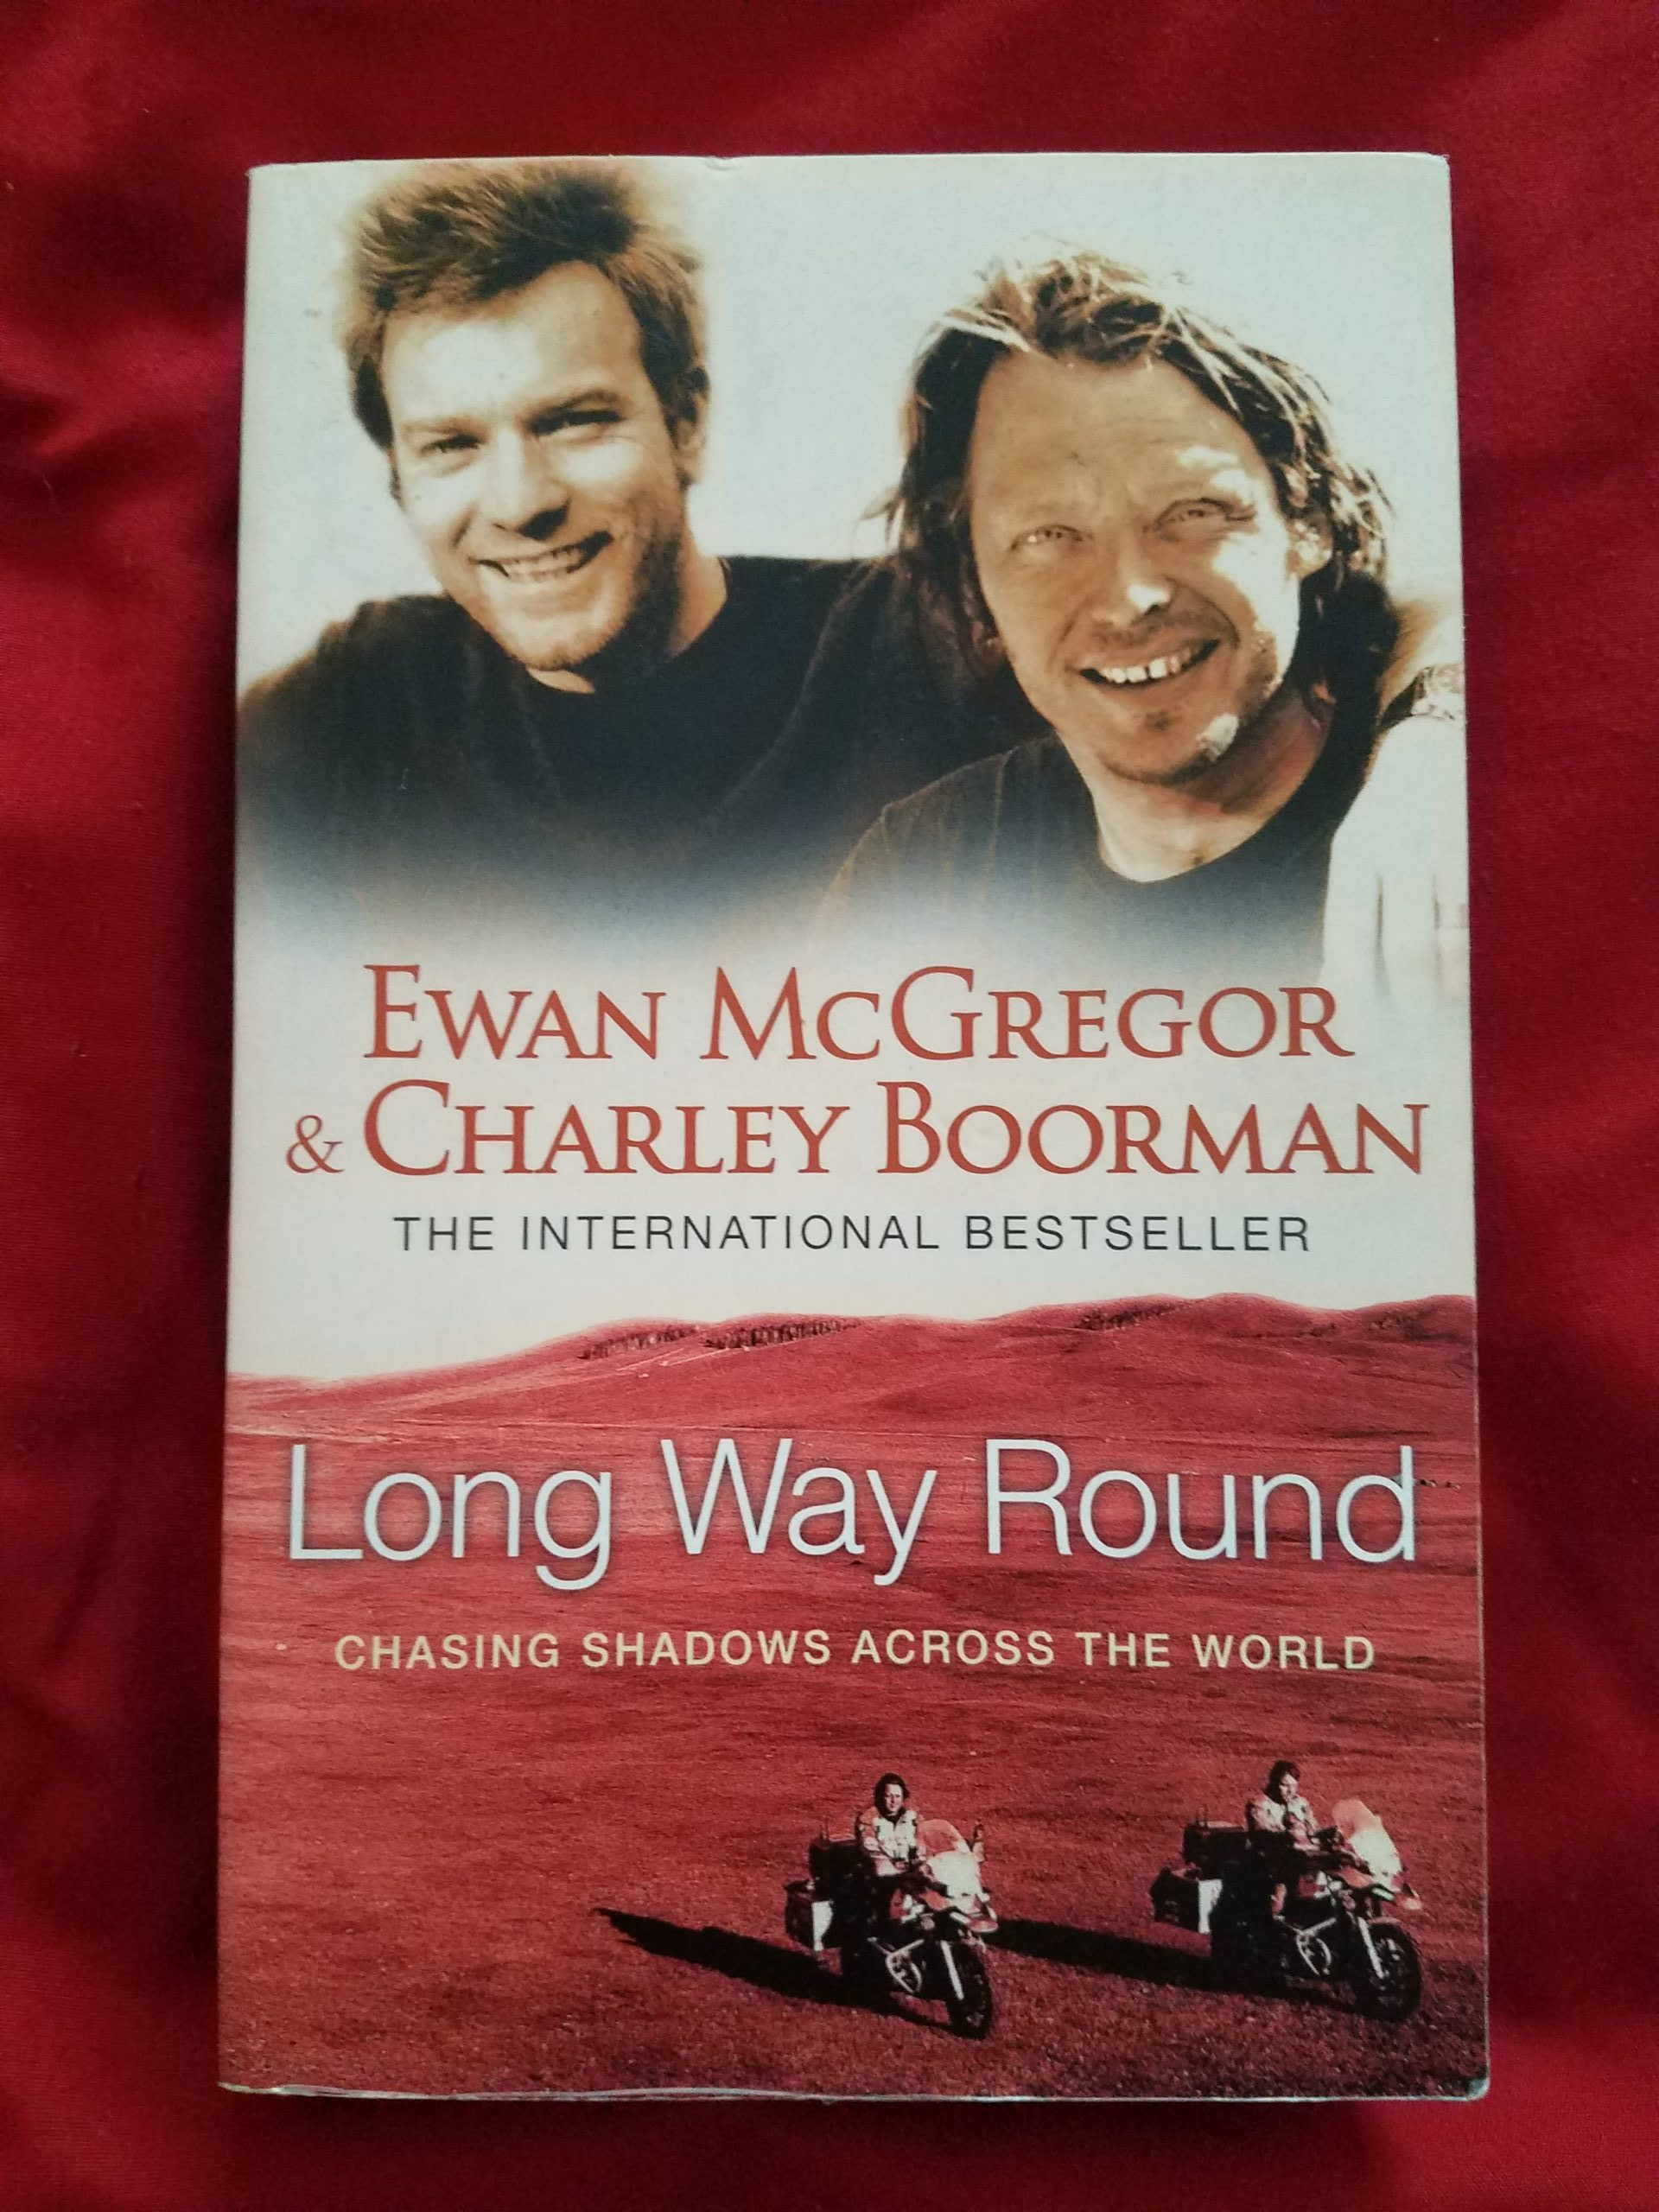 Long Way Round: Chasing Shadows Across the World - 9 to 5 Voyager